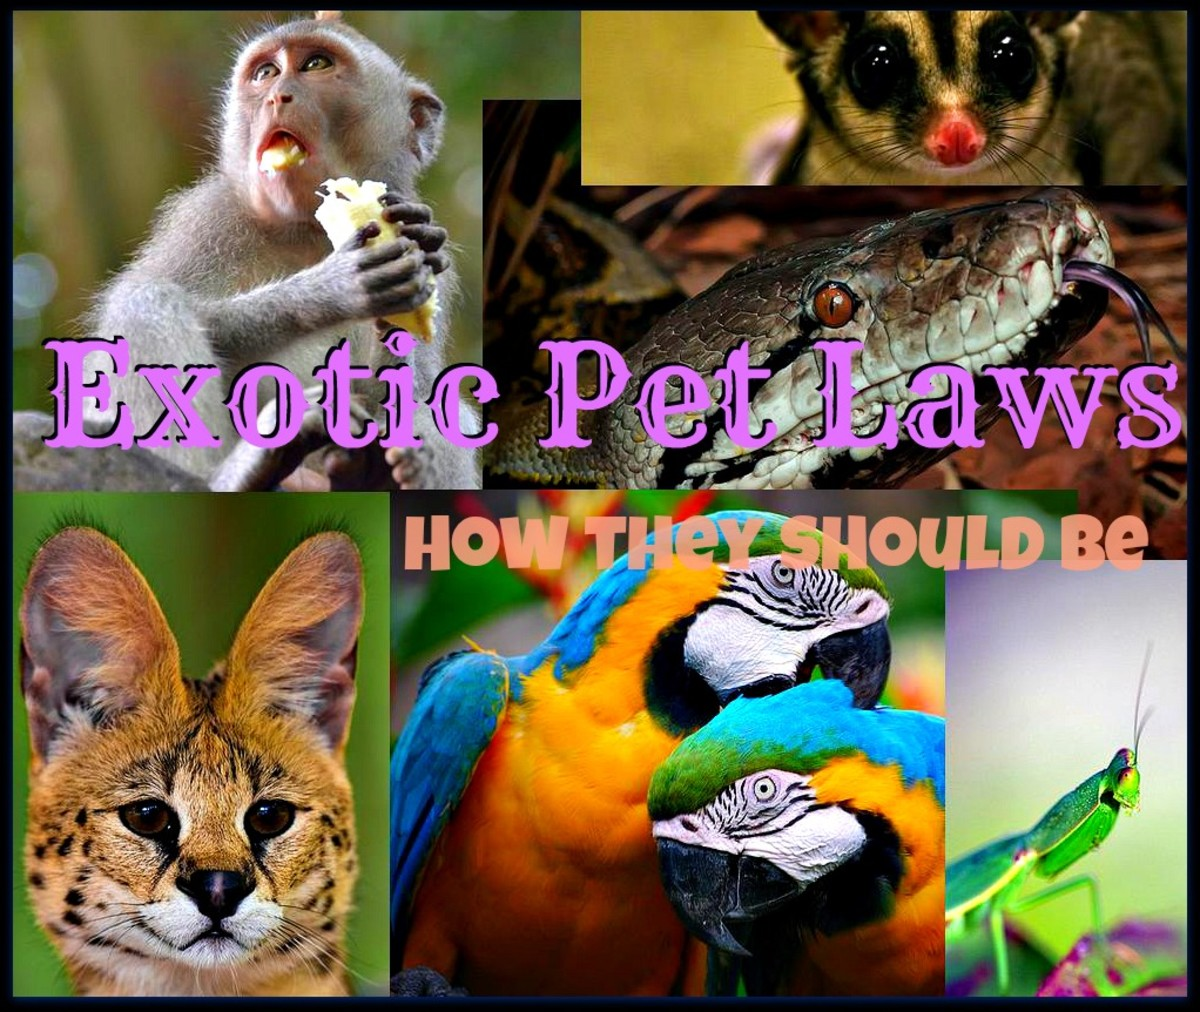 This is What Exotic Pet Laws Should Be Like